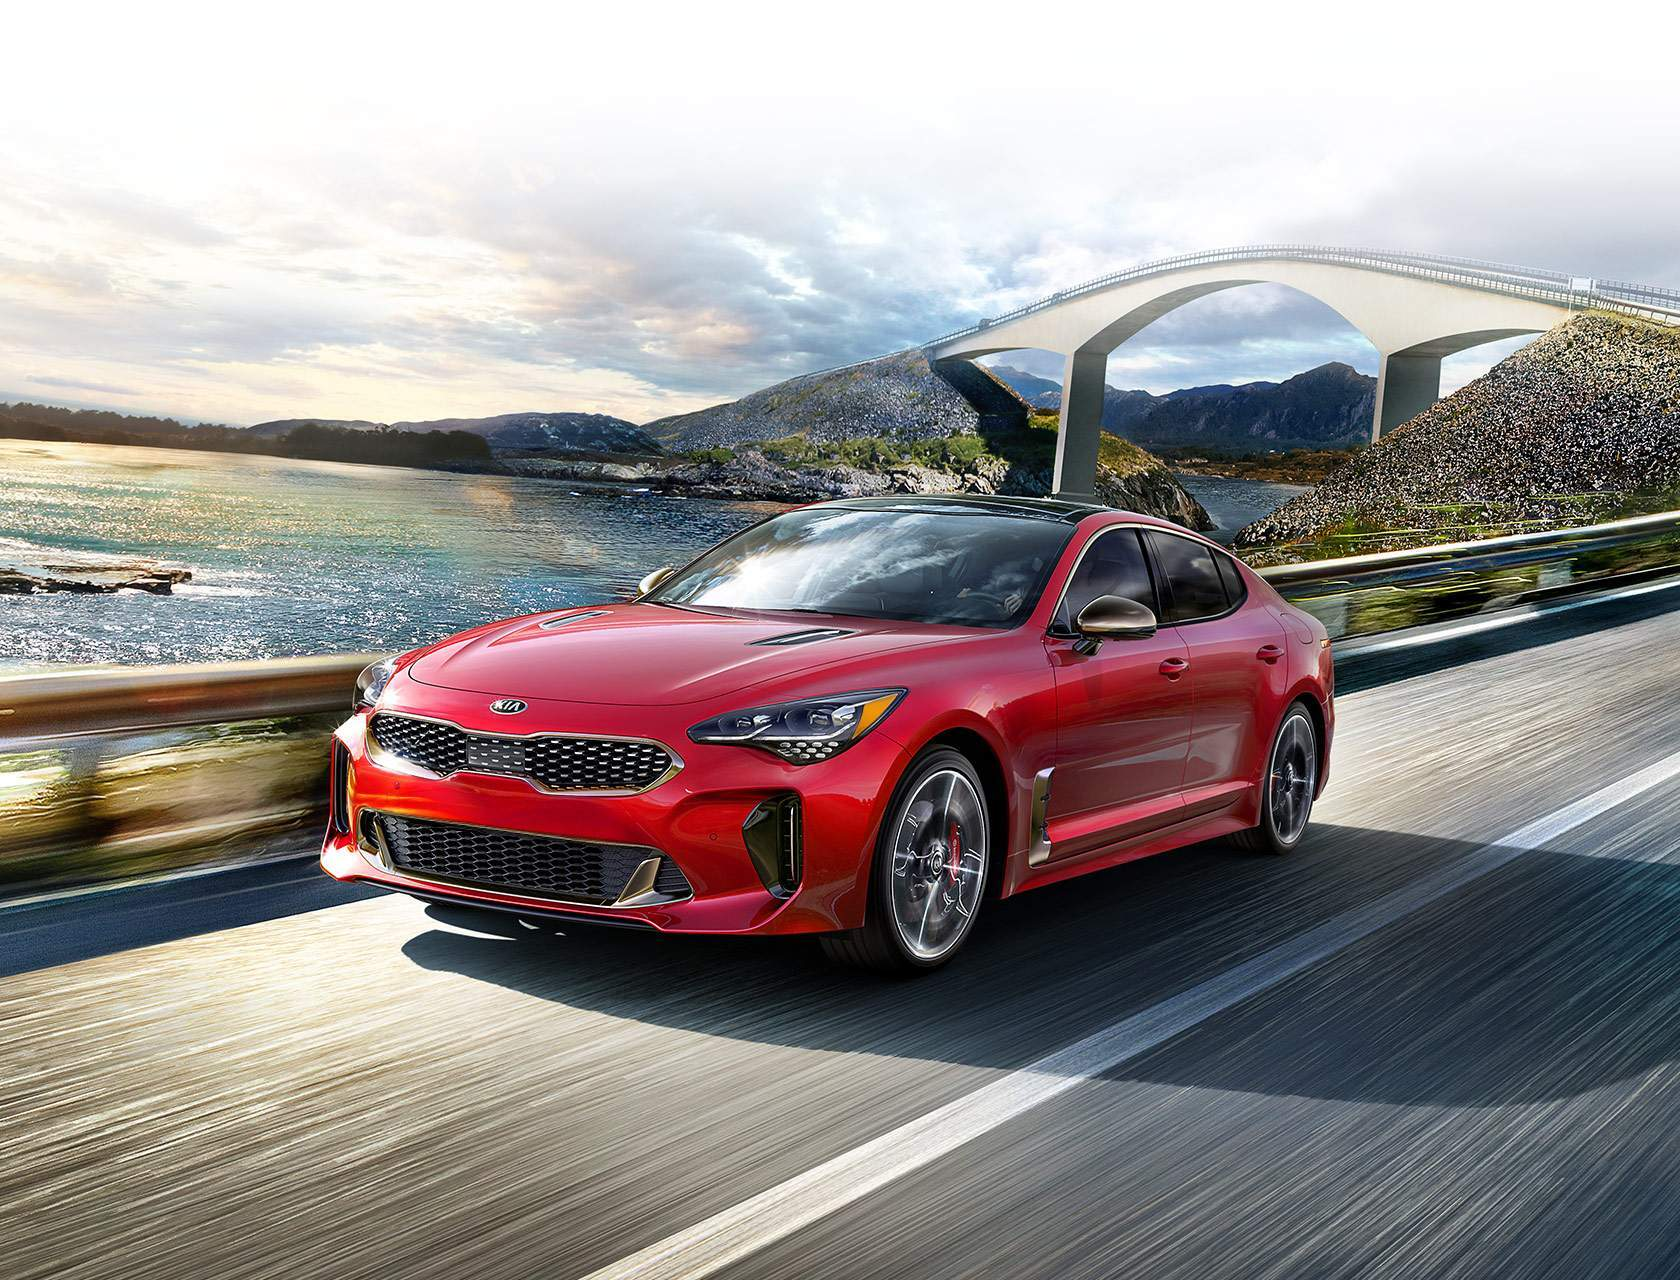 2018 Kia Stinger in York, PA